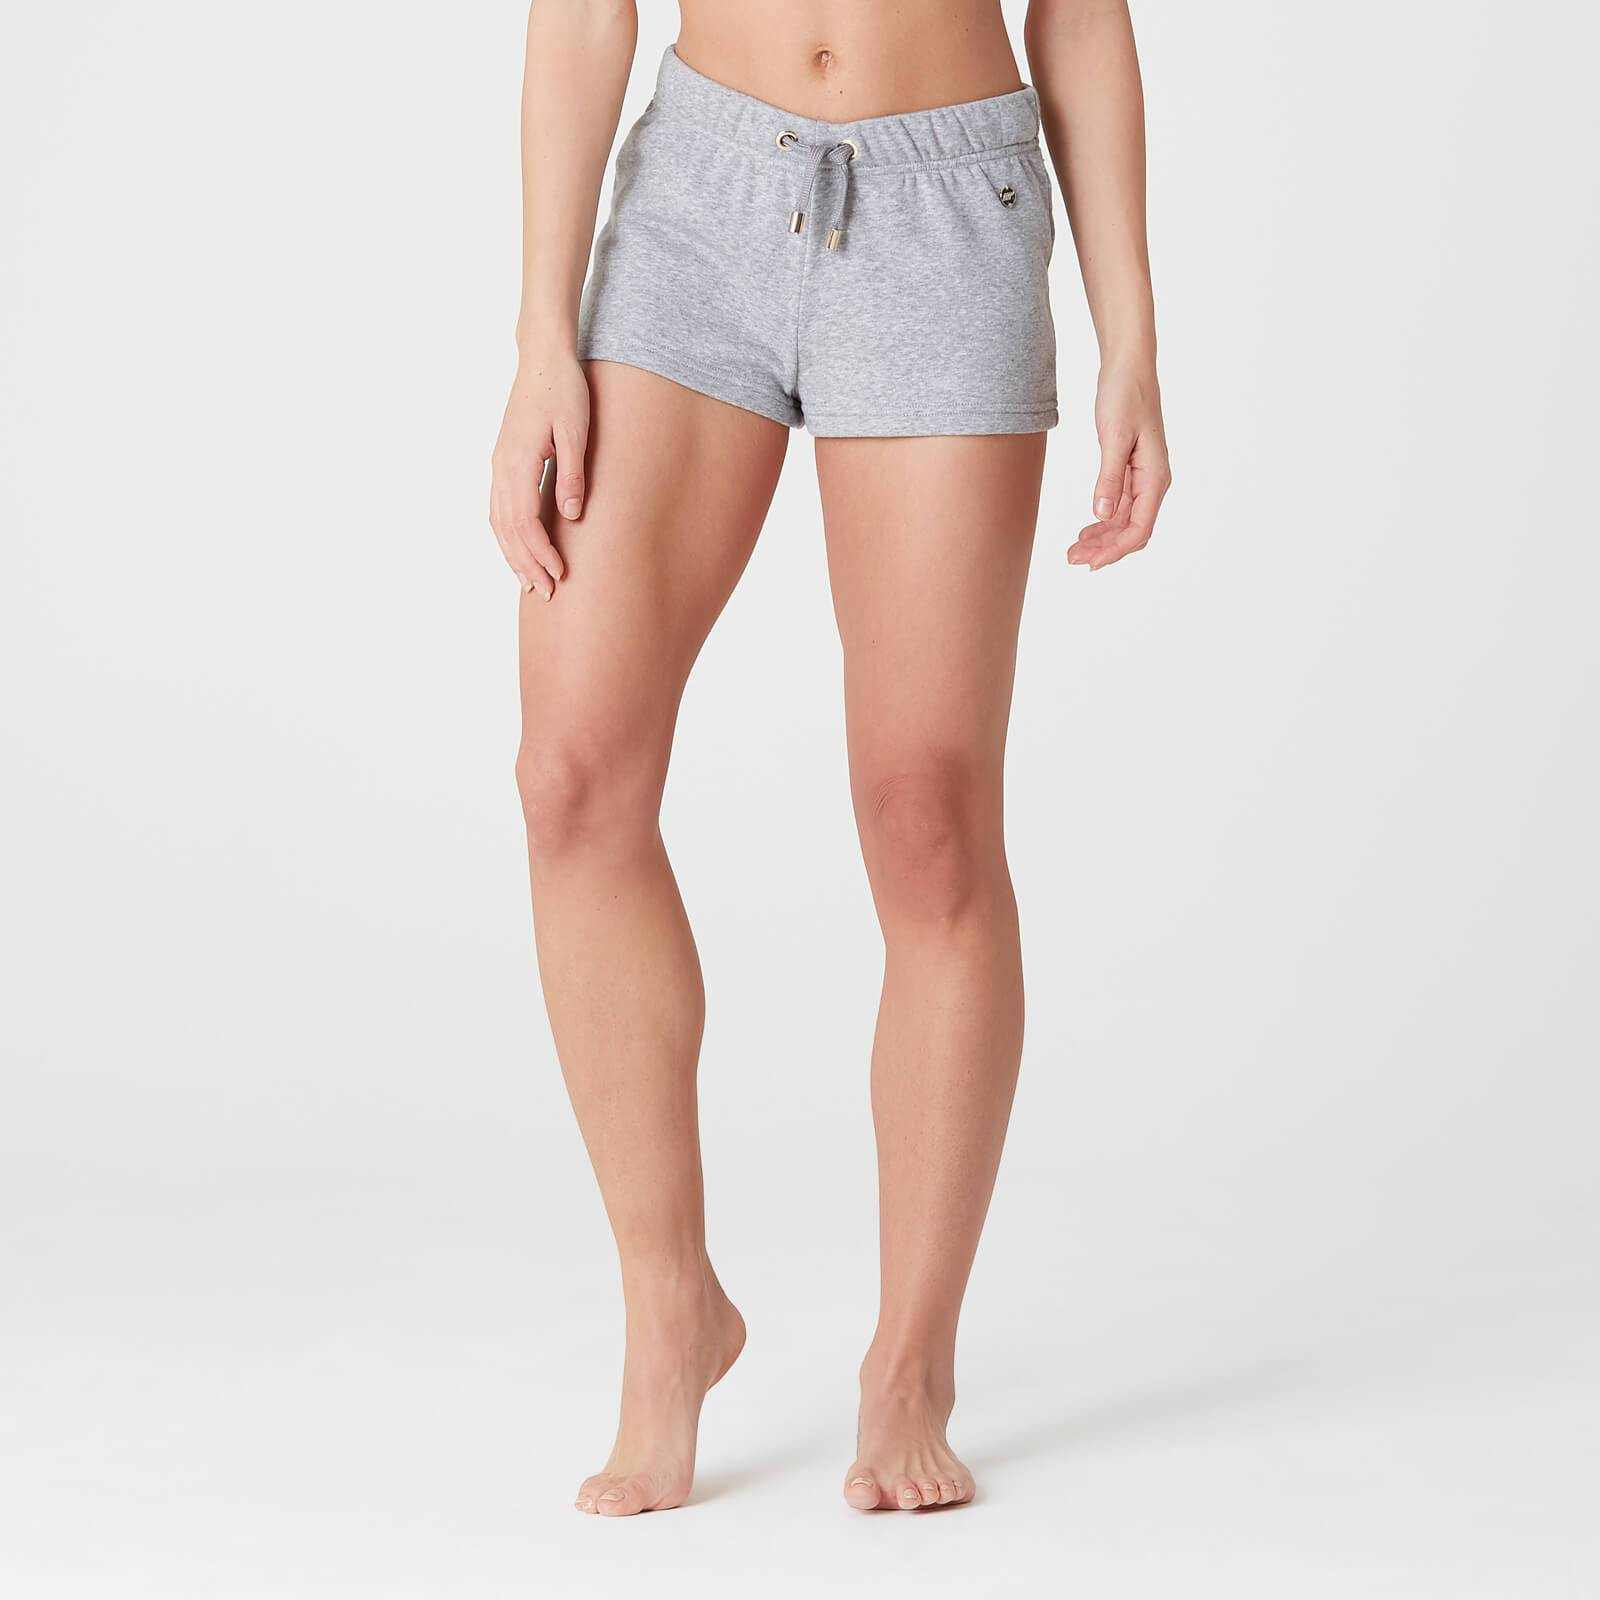 Myprotein Luxe Lounge Shorts - Grey Marl - S